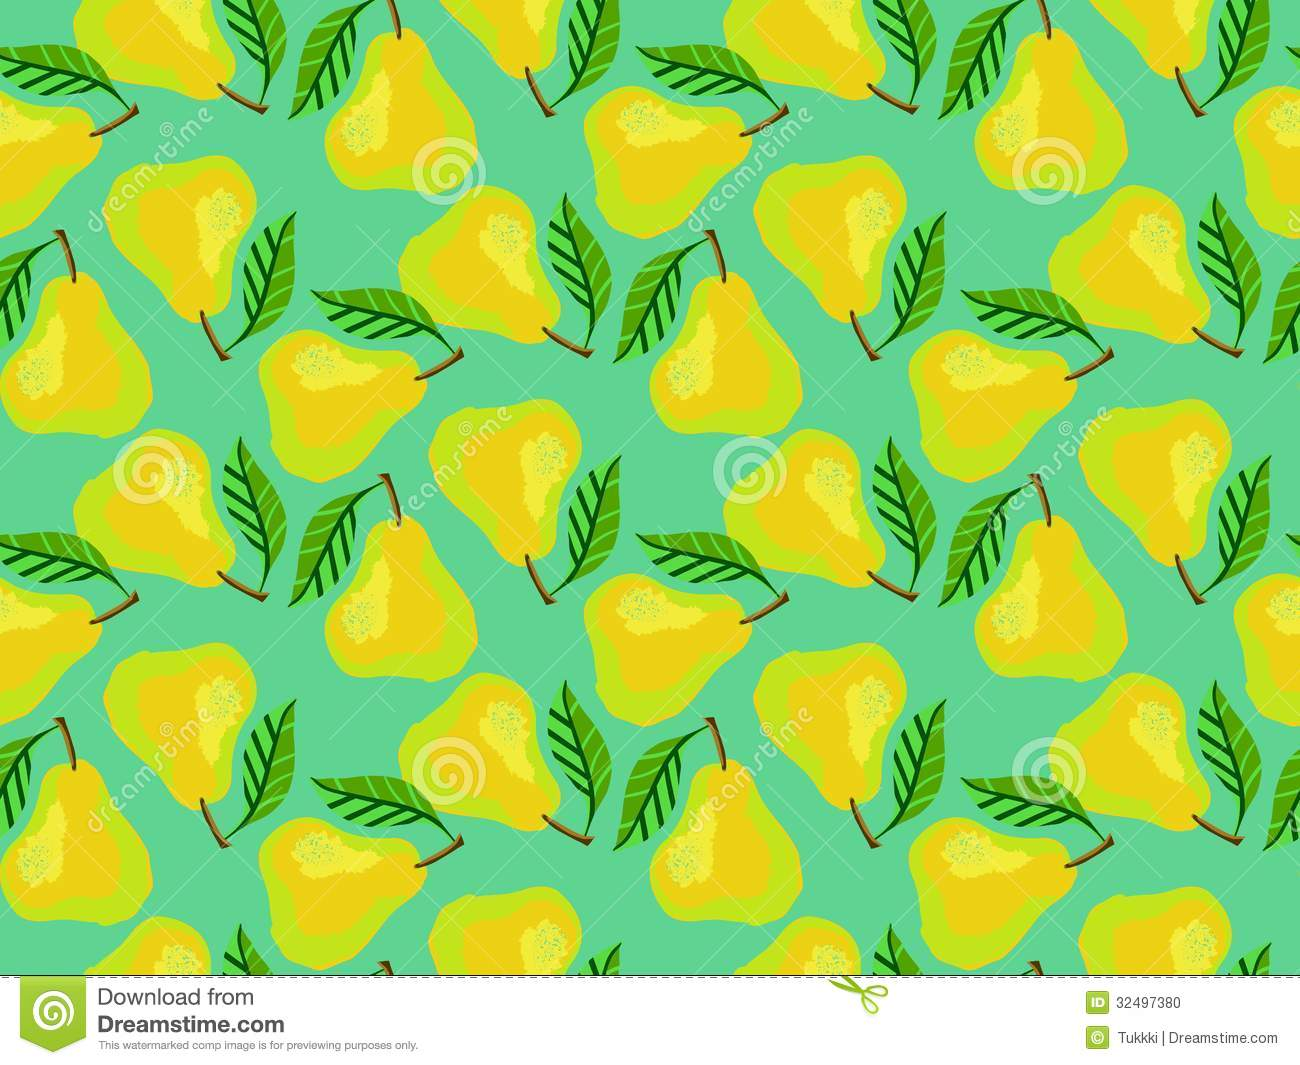 Grunge Pattern With Painted Yellow Pears And Leafs Stock Photo Image